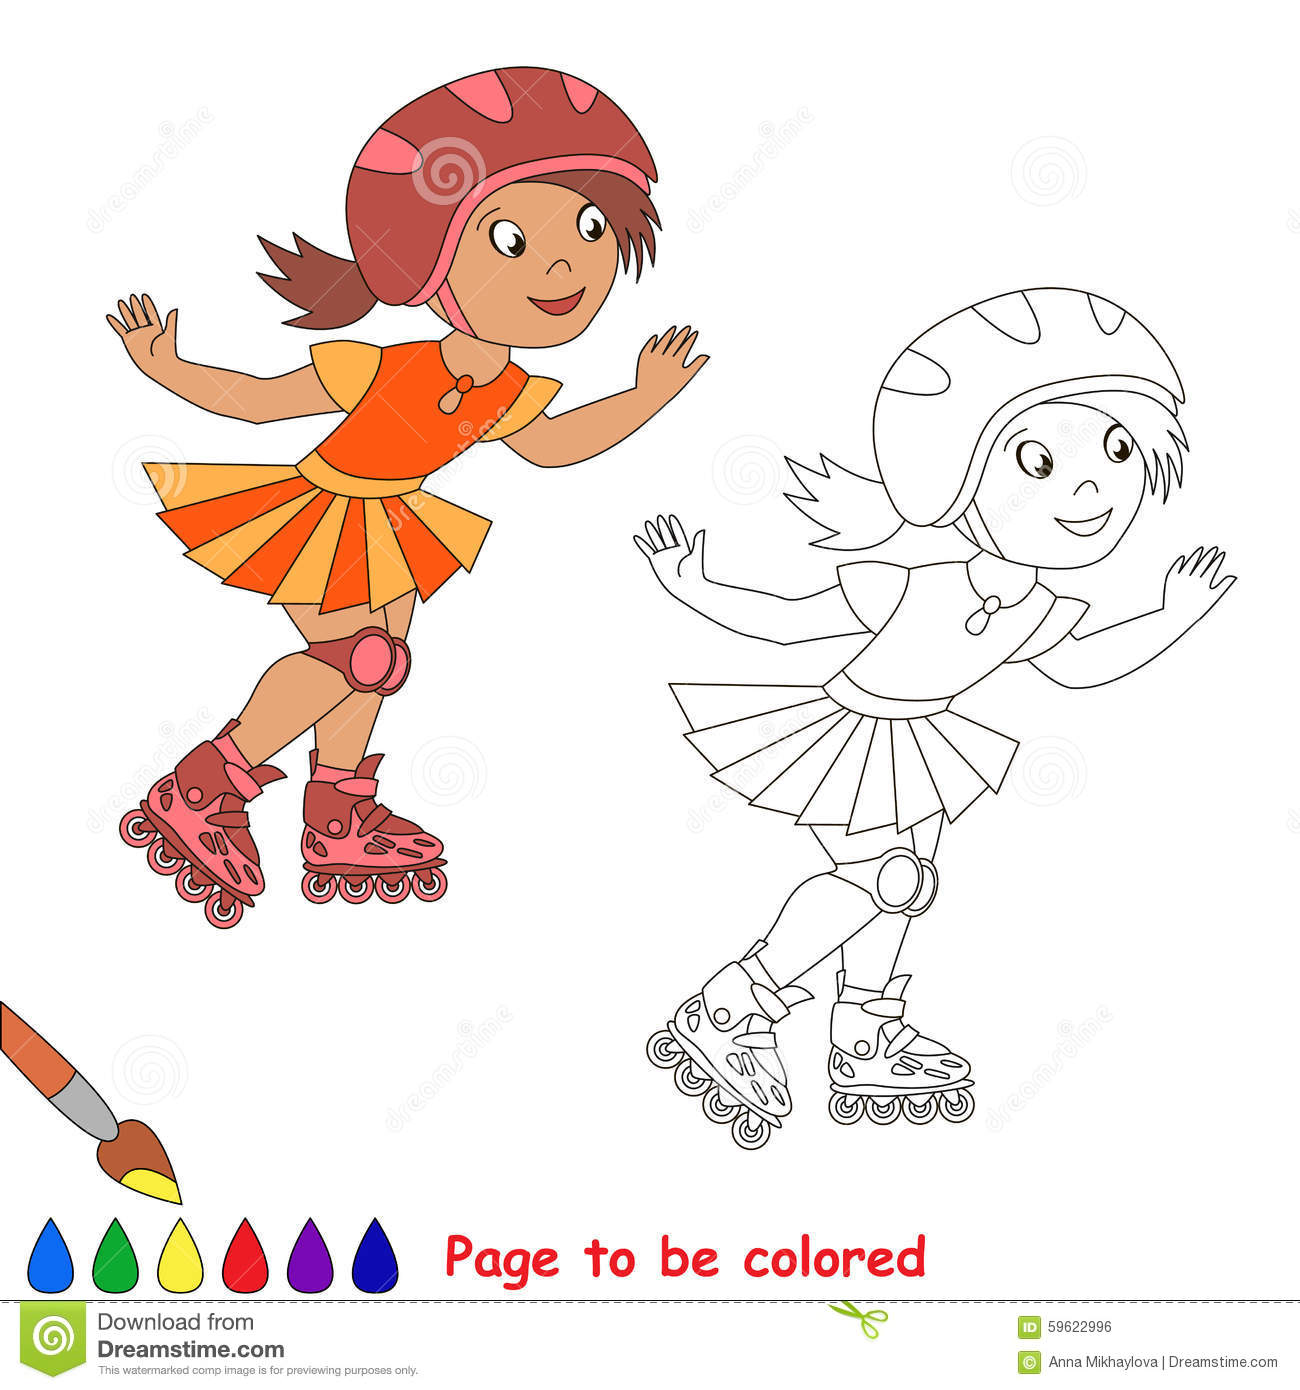 Roller skates one line - One Child Girl Roller Skating In A Red Helmet And